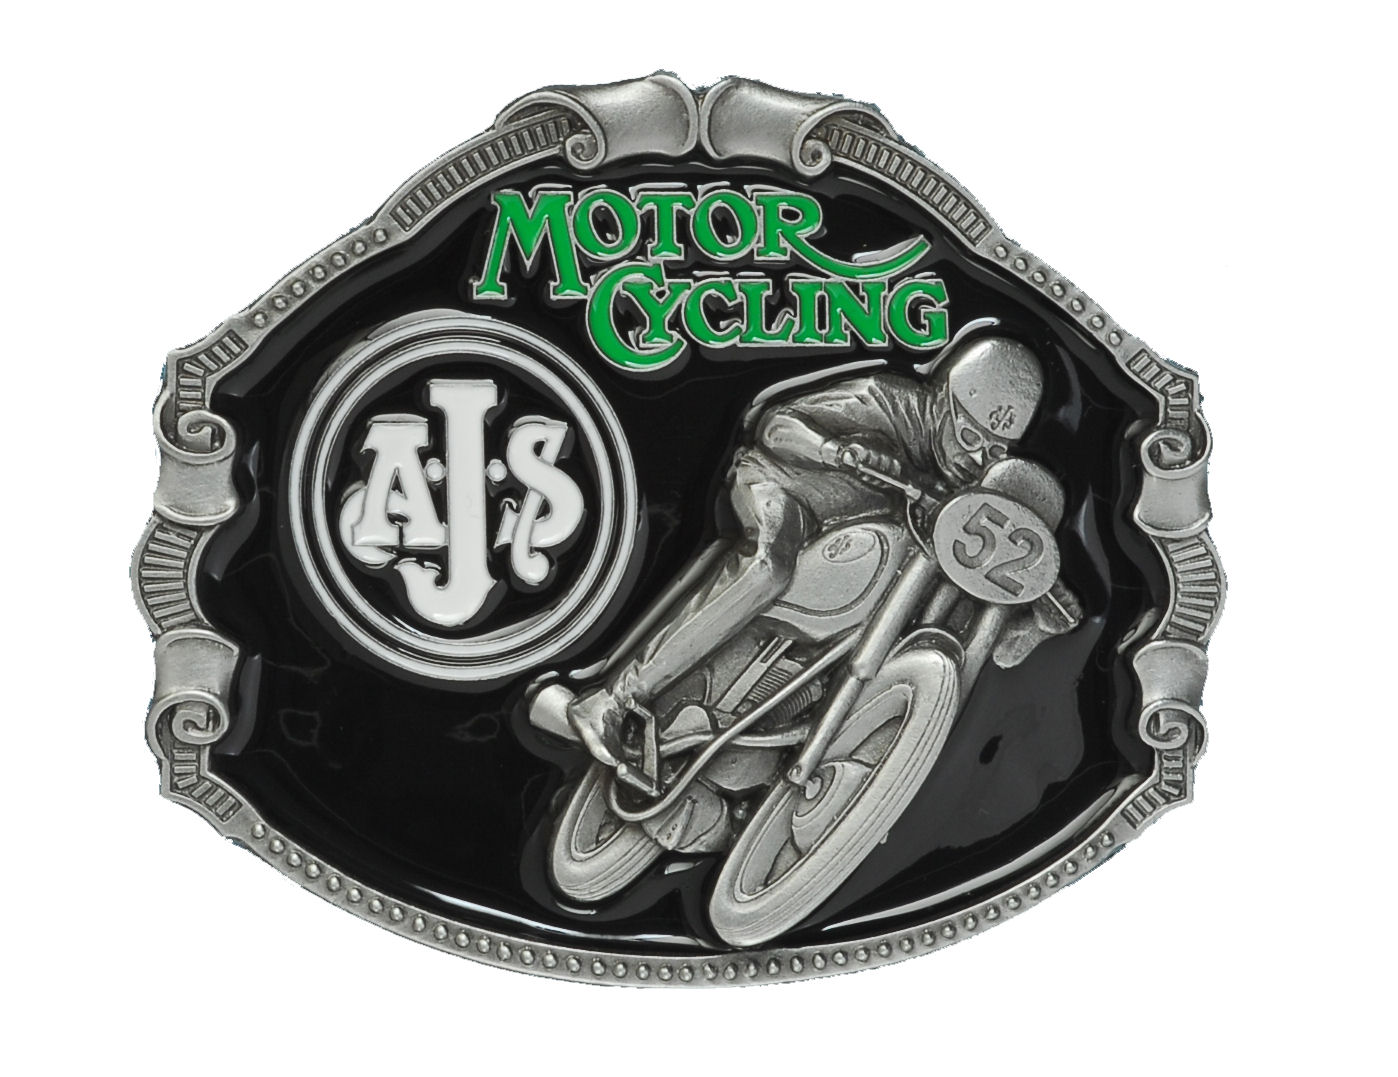 A.J.S. Motorcycle Belt Buckle